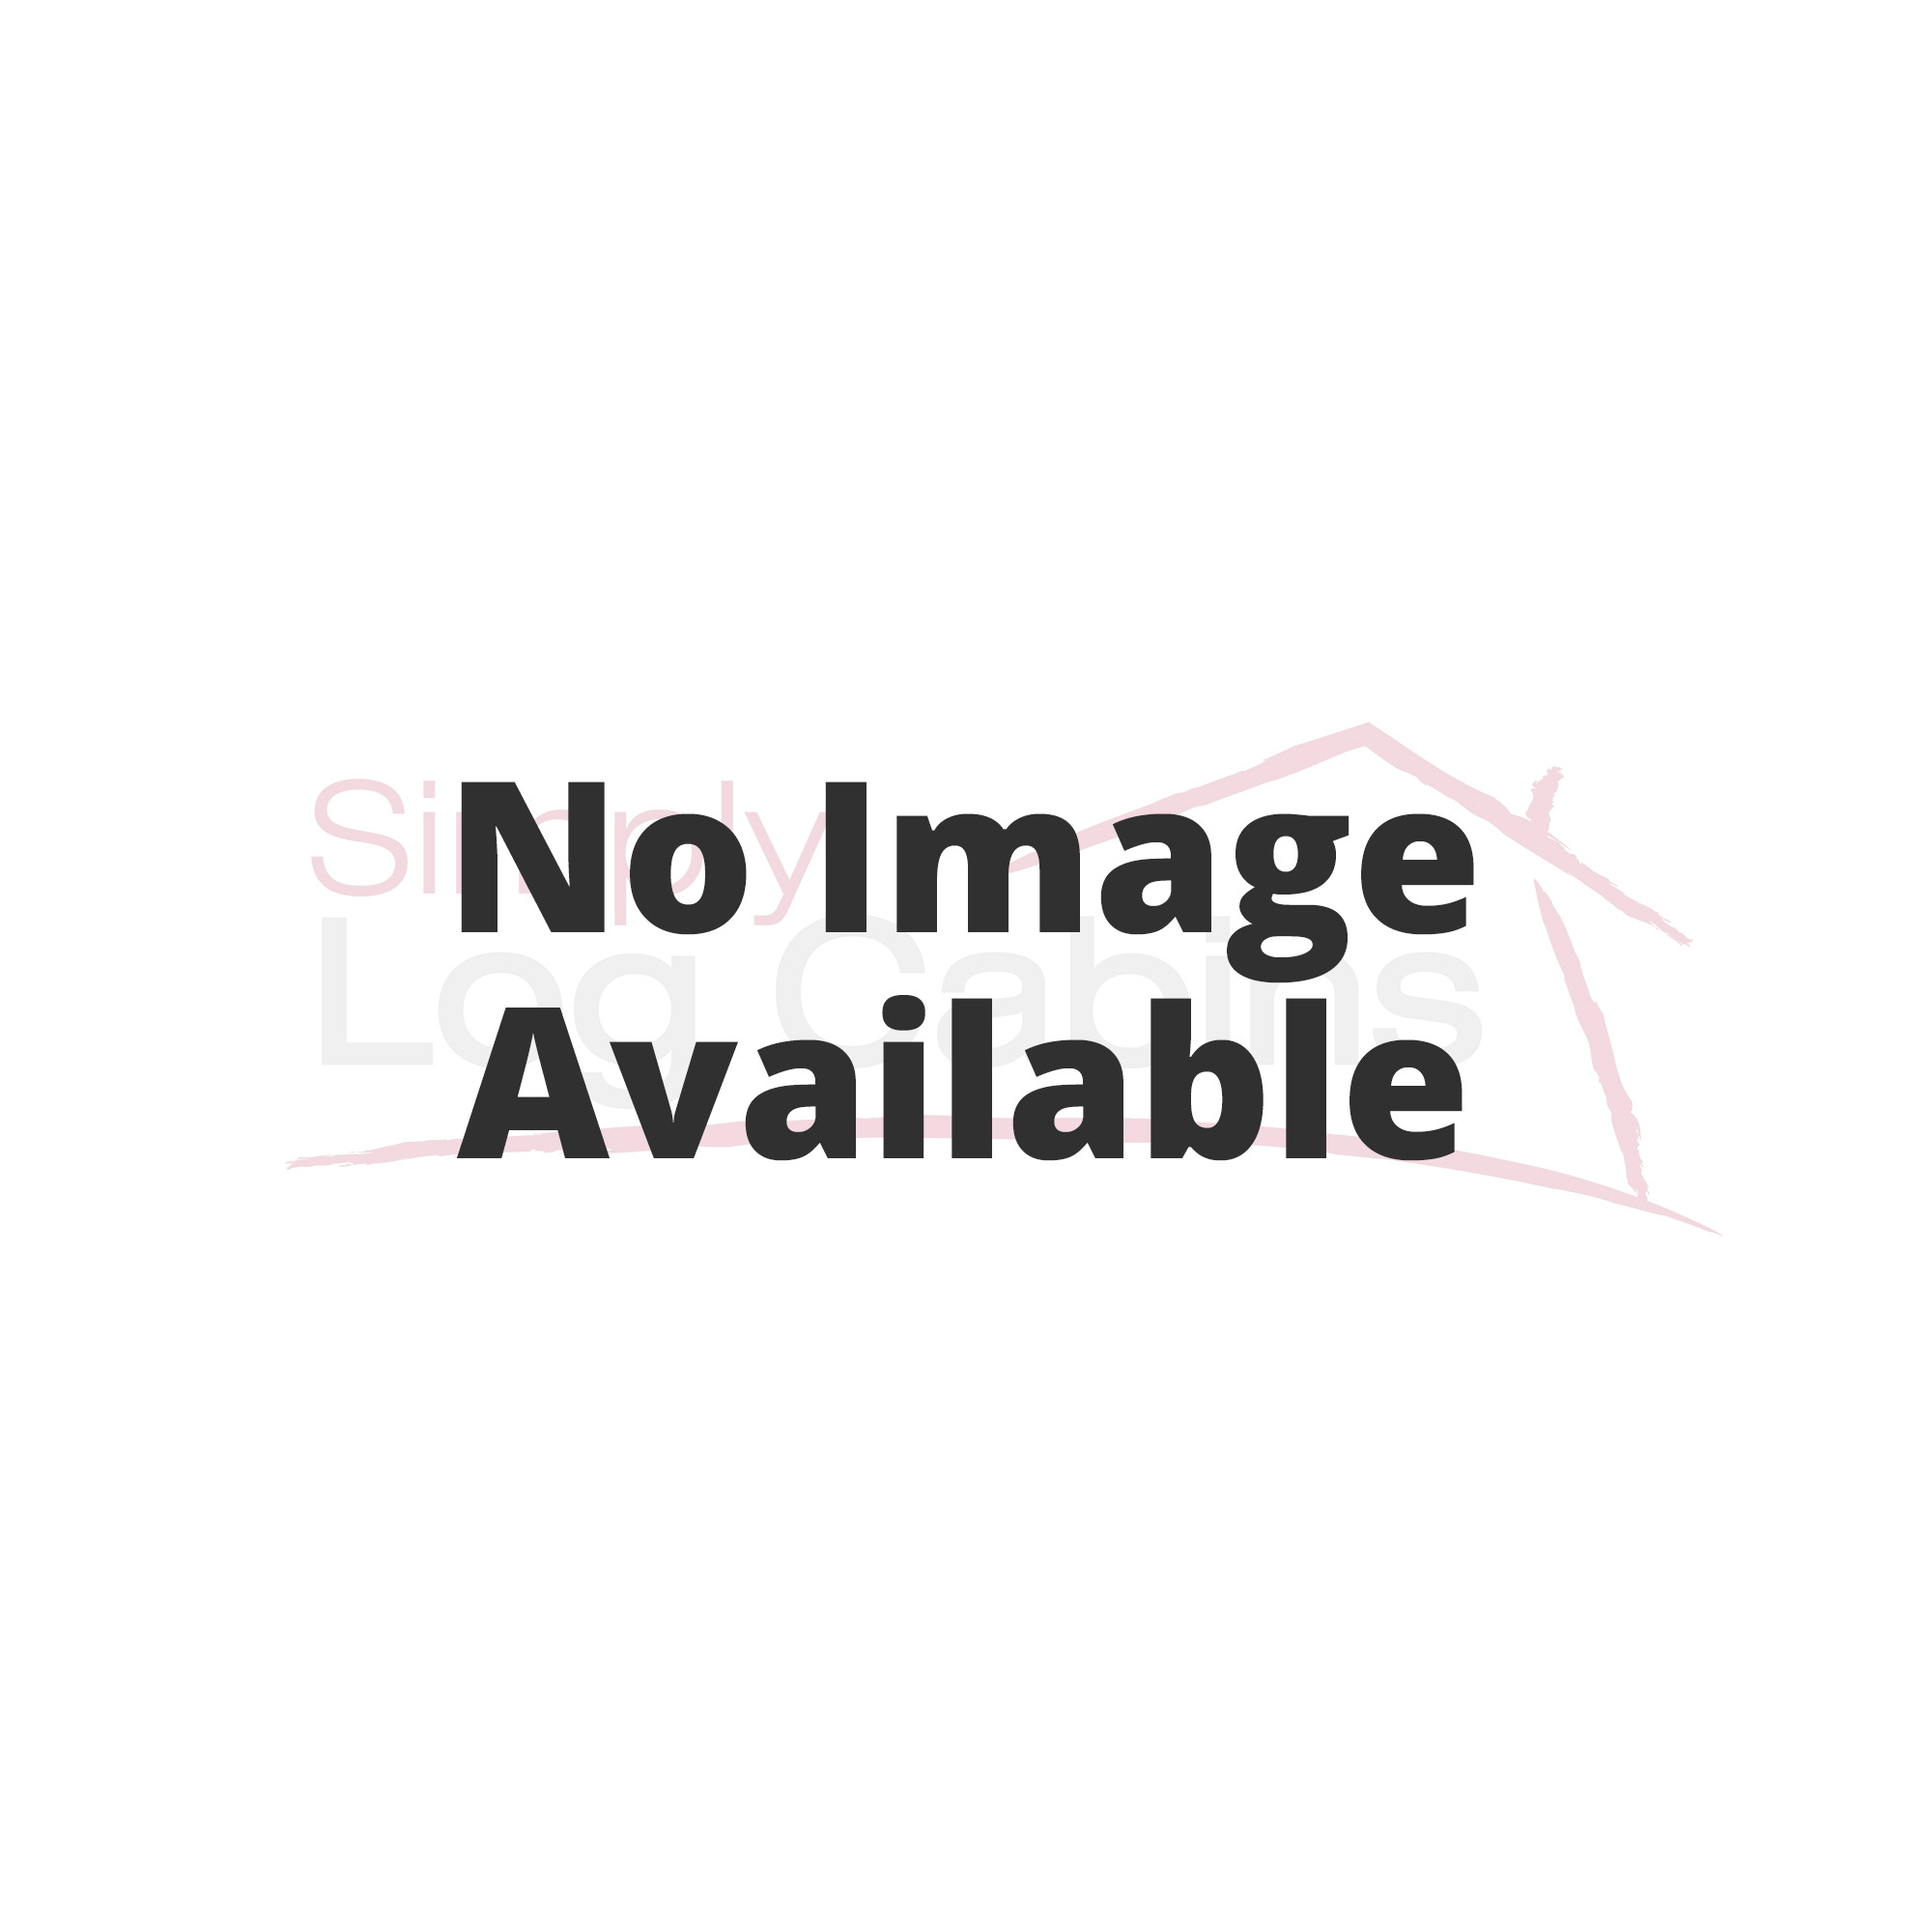 Jagram Winchester Gazebo with Wooden or Tiled Roof